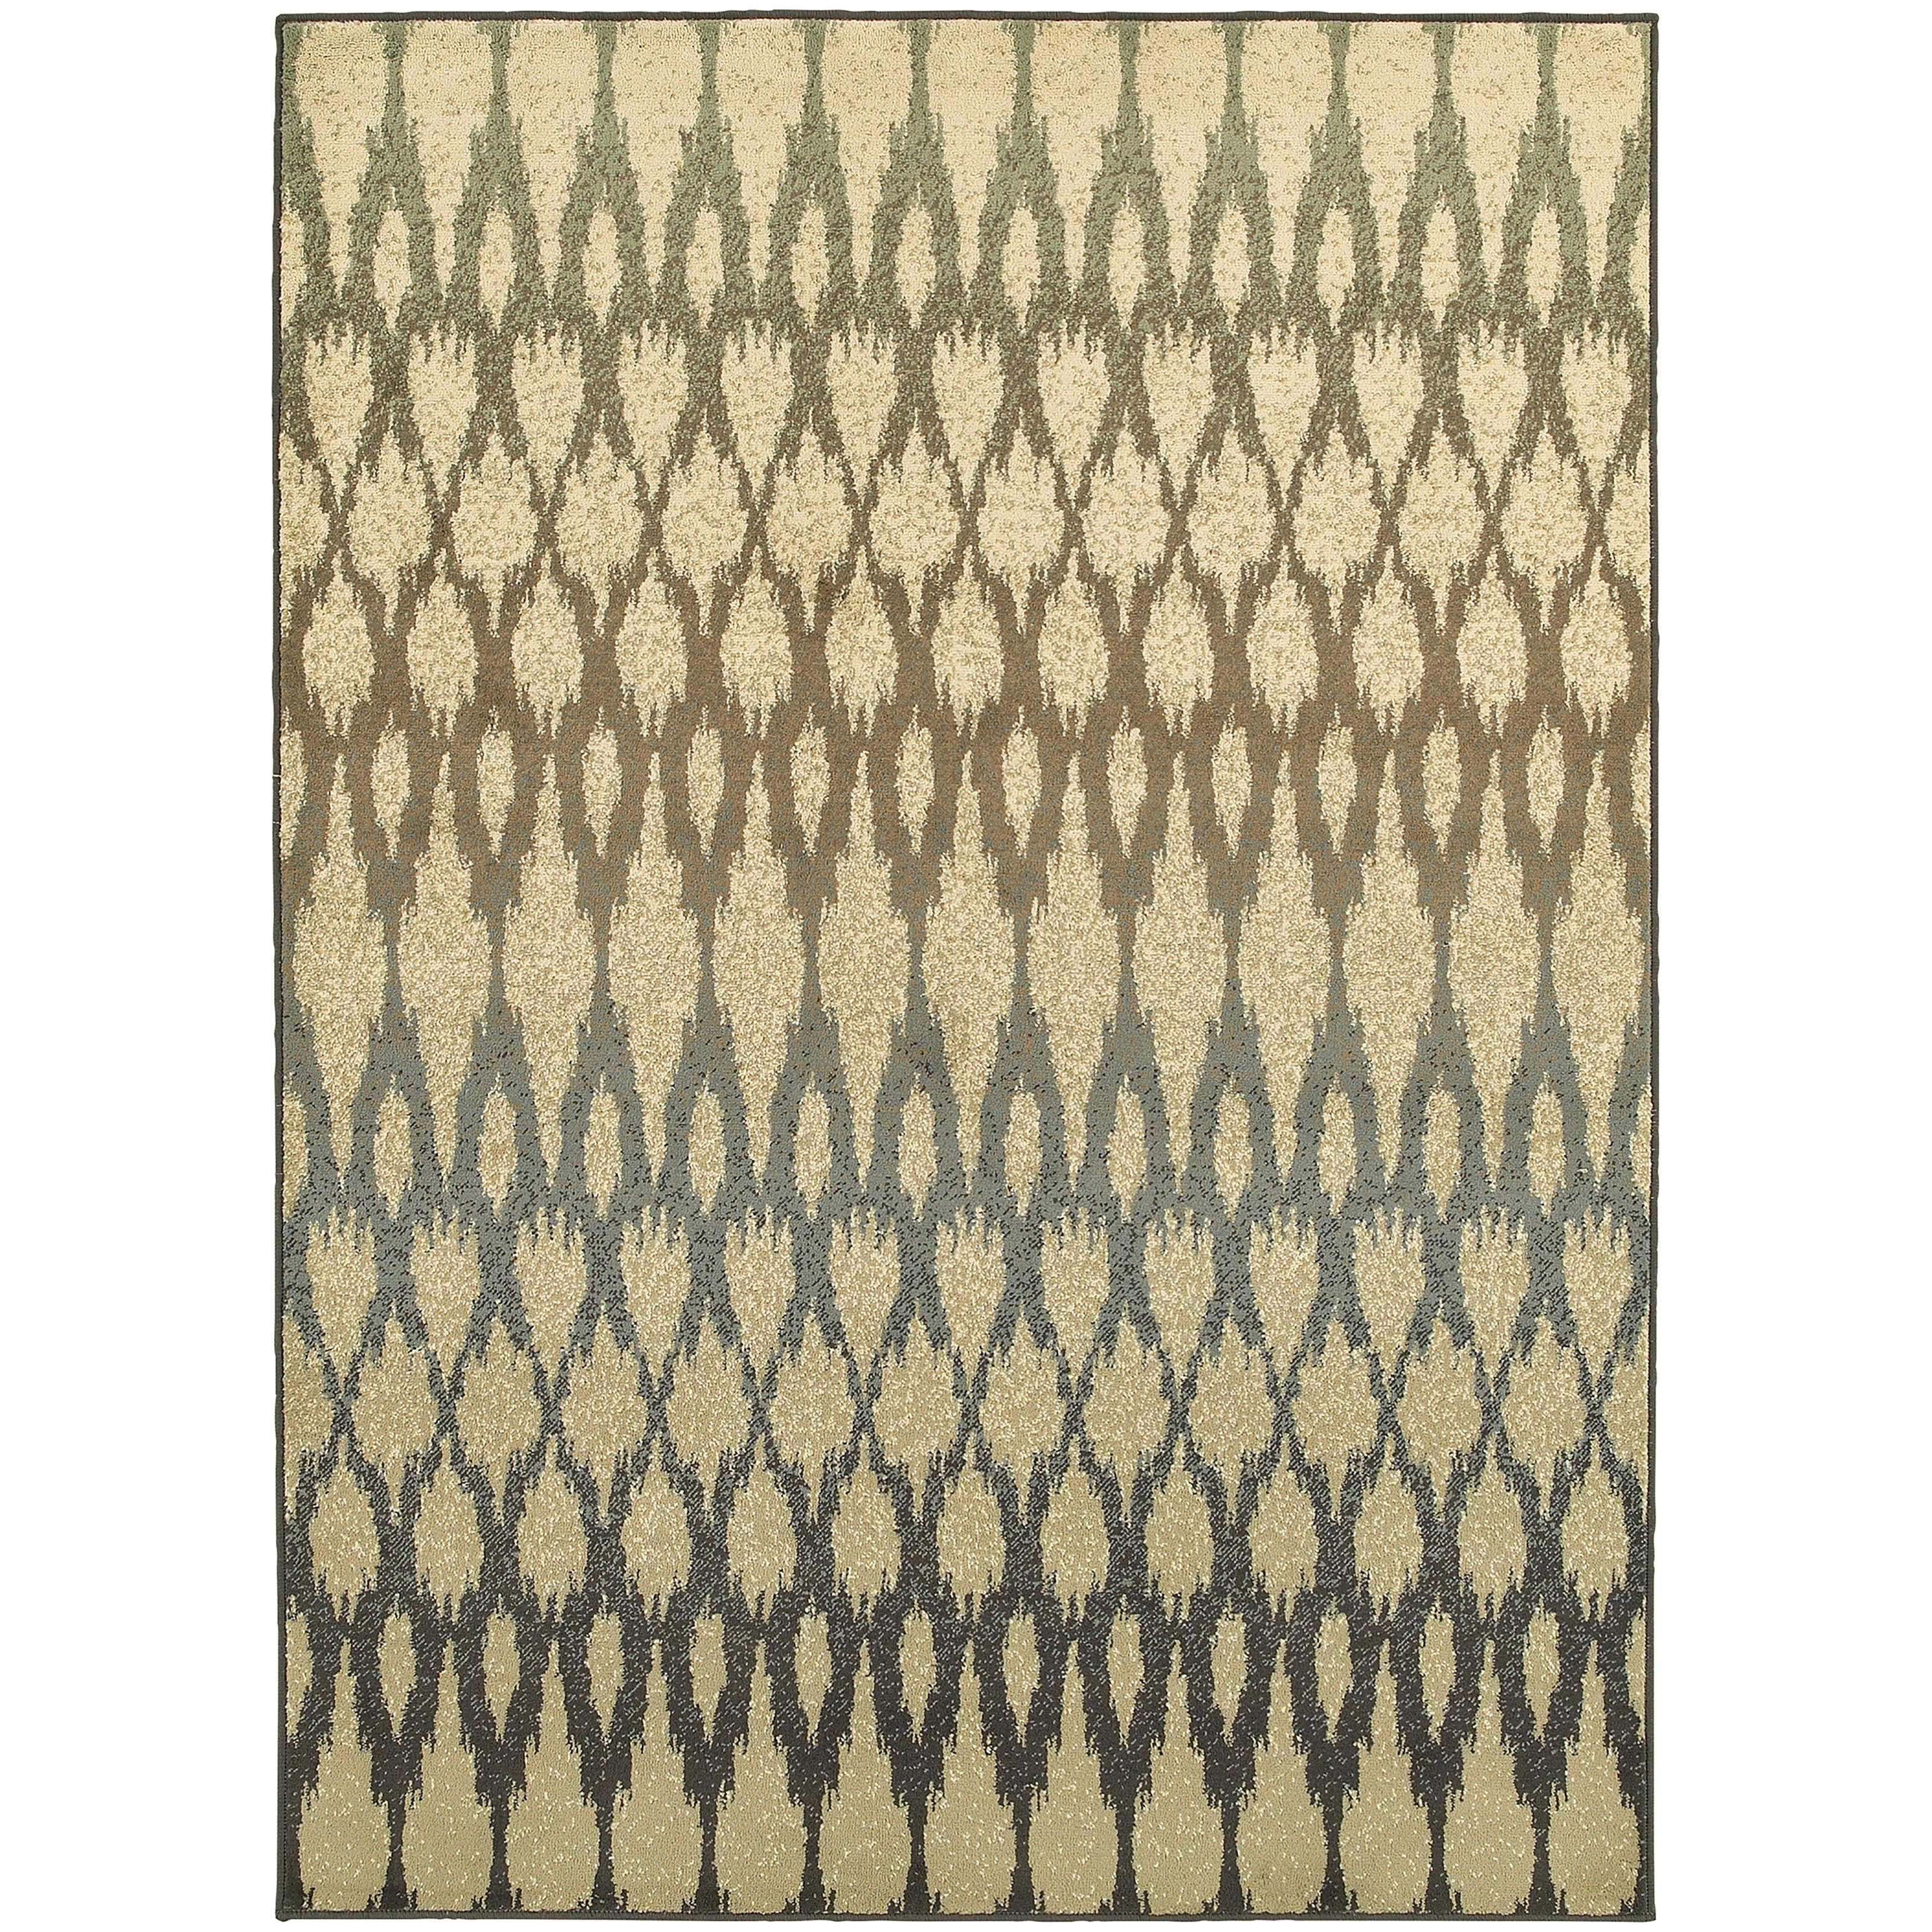 Brentwood 8x10 Rug by Oriental Weavers at Red Knot